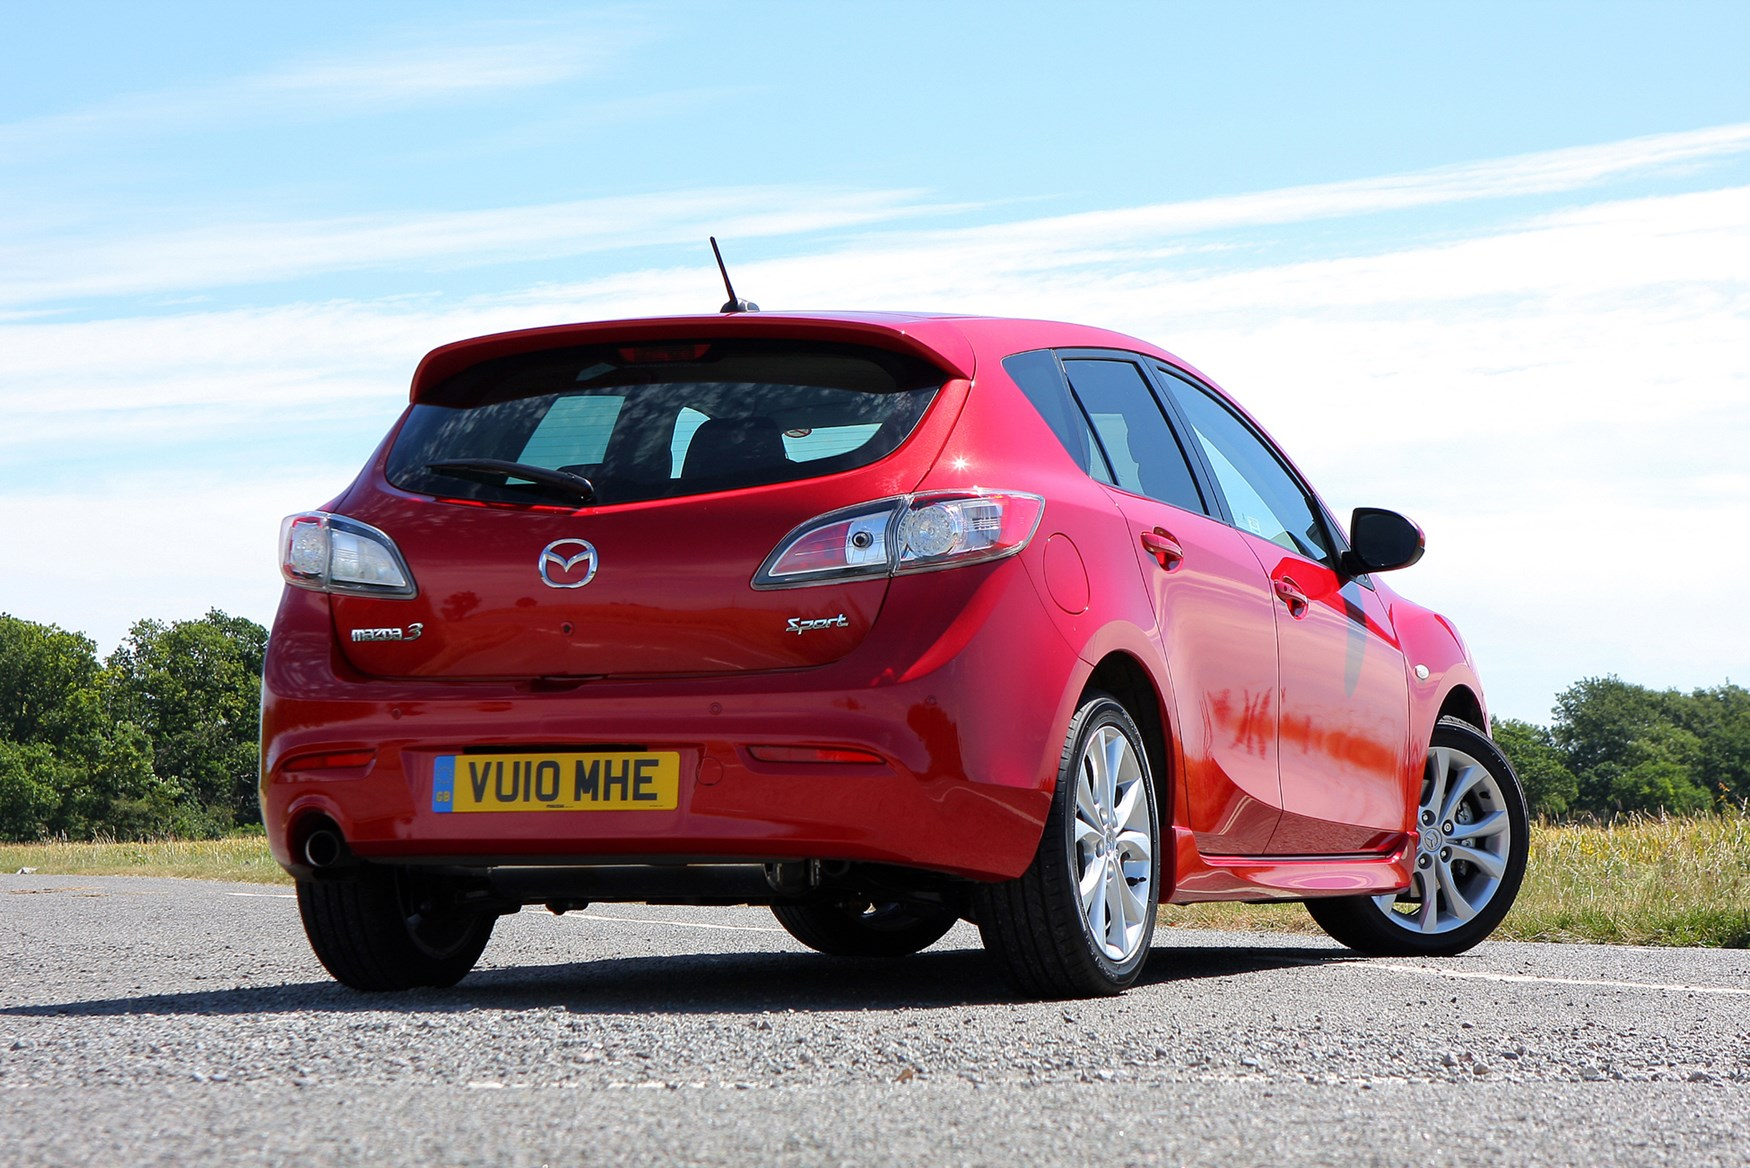 Used Mazda 3 Hatchback (2009 - 2013) Review | Parkers